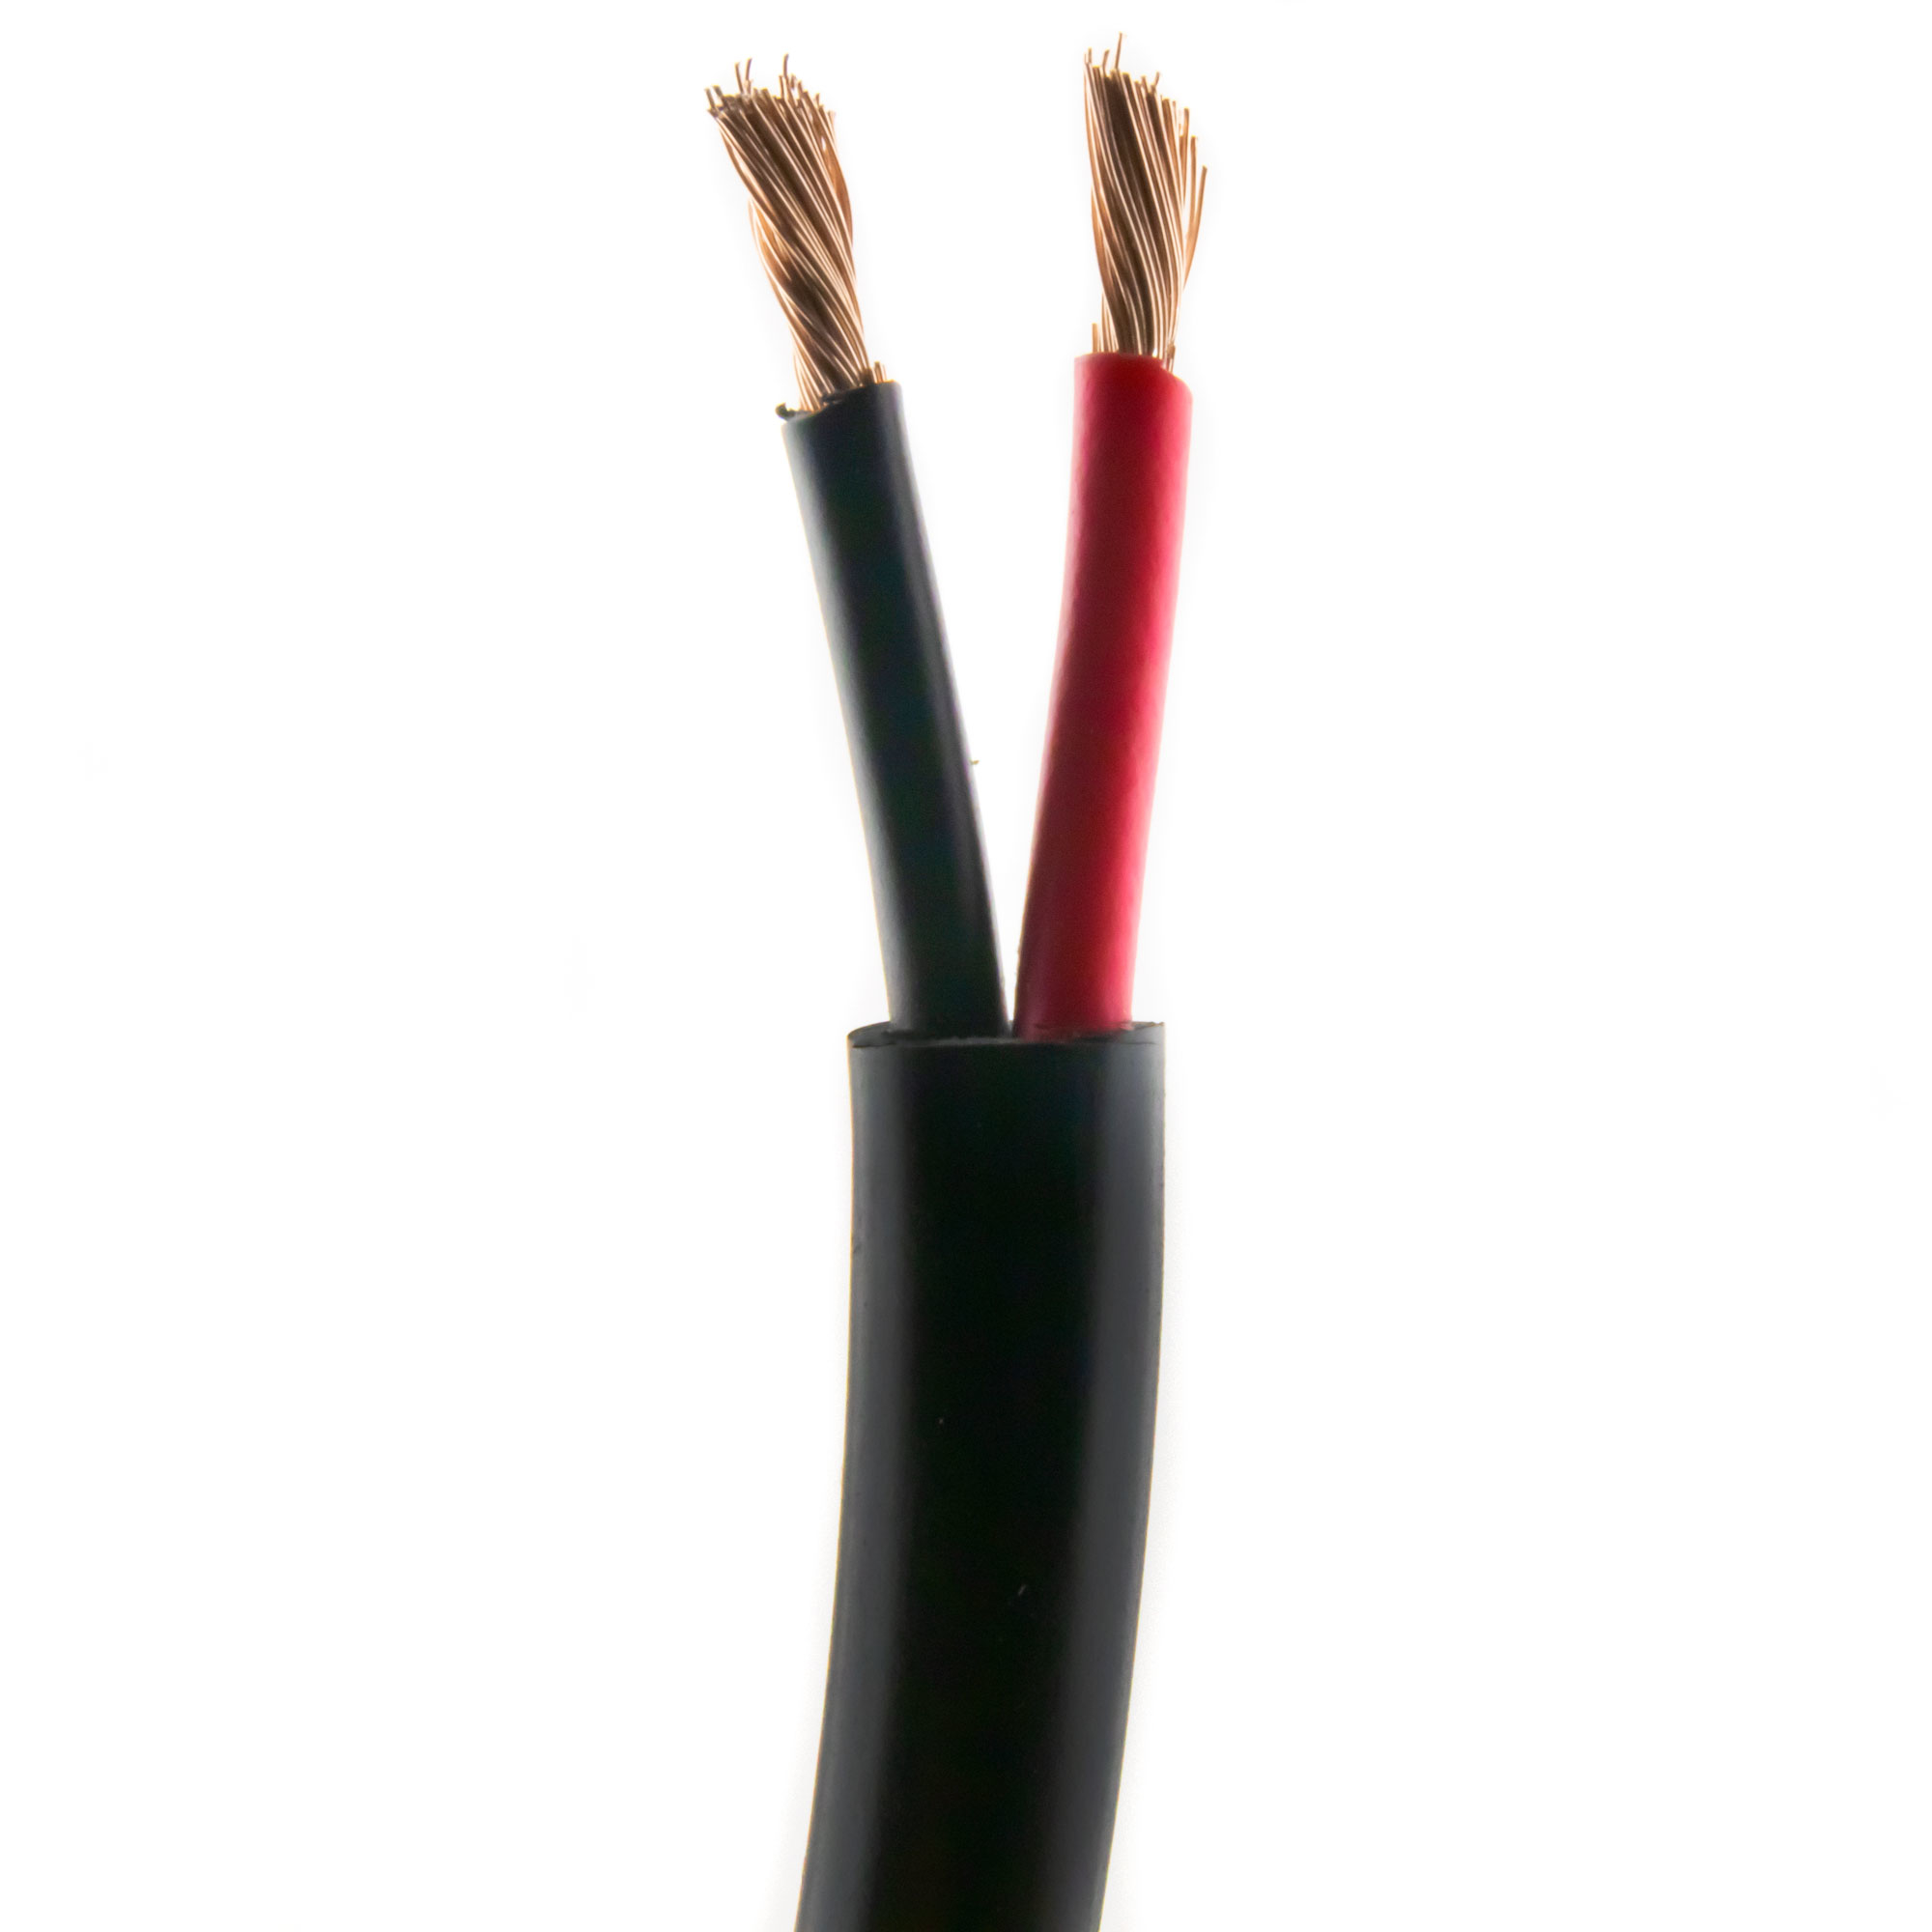 Loudspeaker cable ROUND 2,50mm, CCA, 25M, black